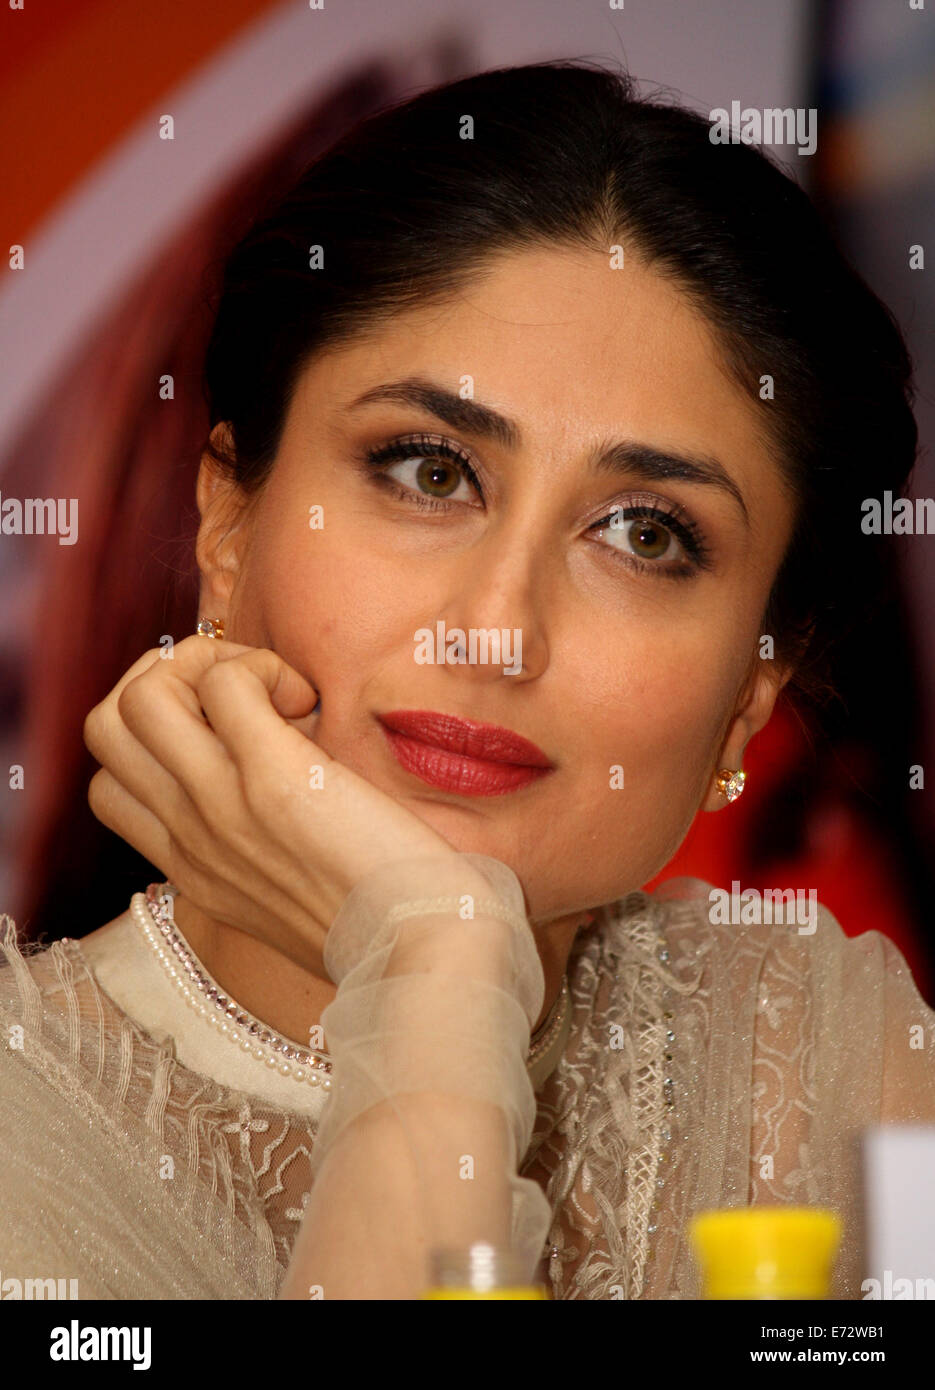 bollywood actress kareena kapoor stock photos & bollywood actress